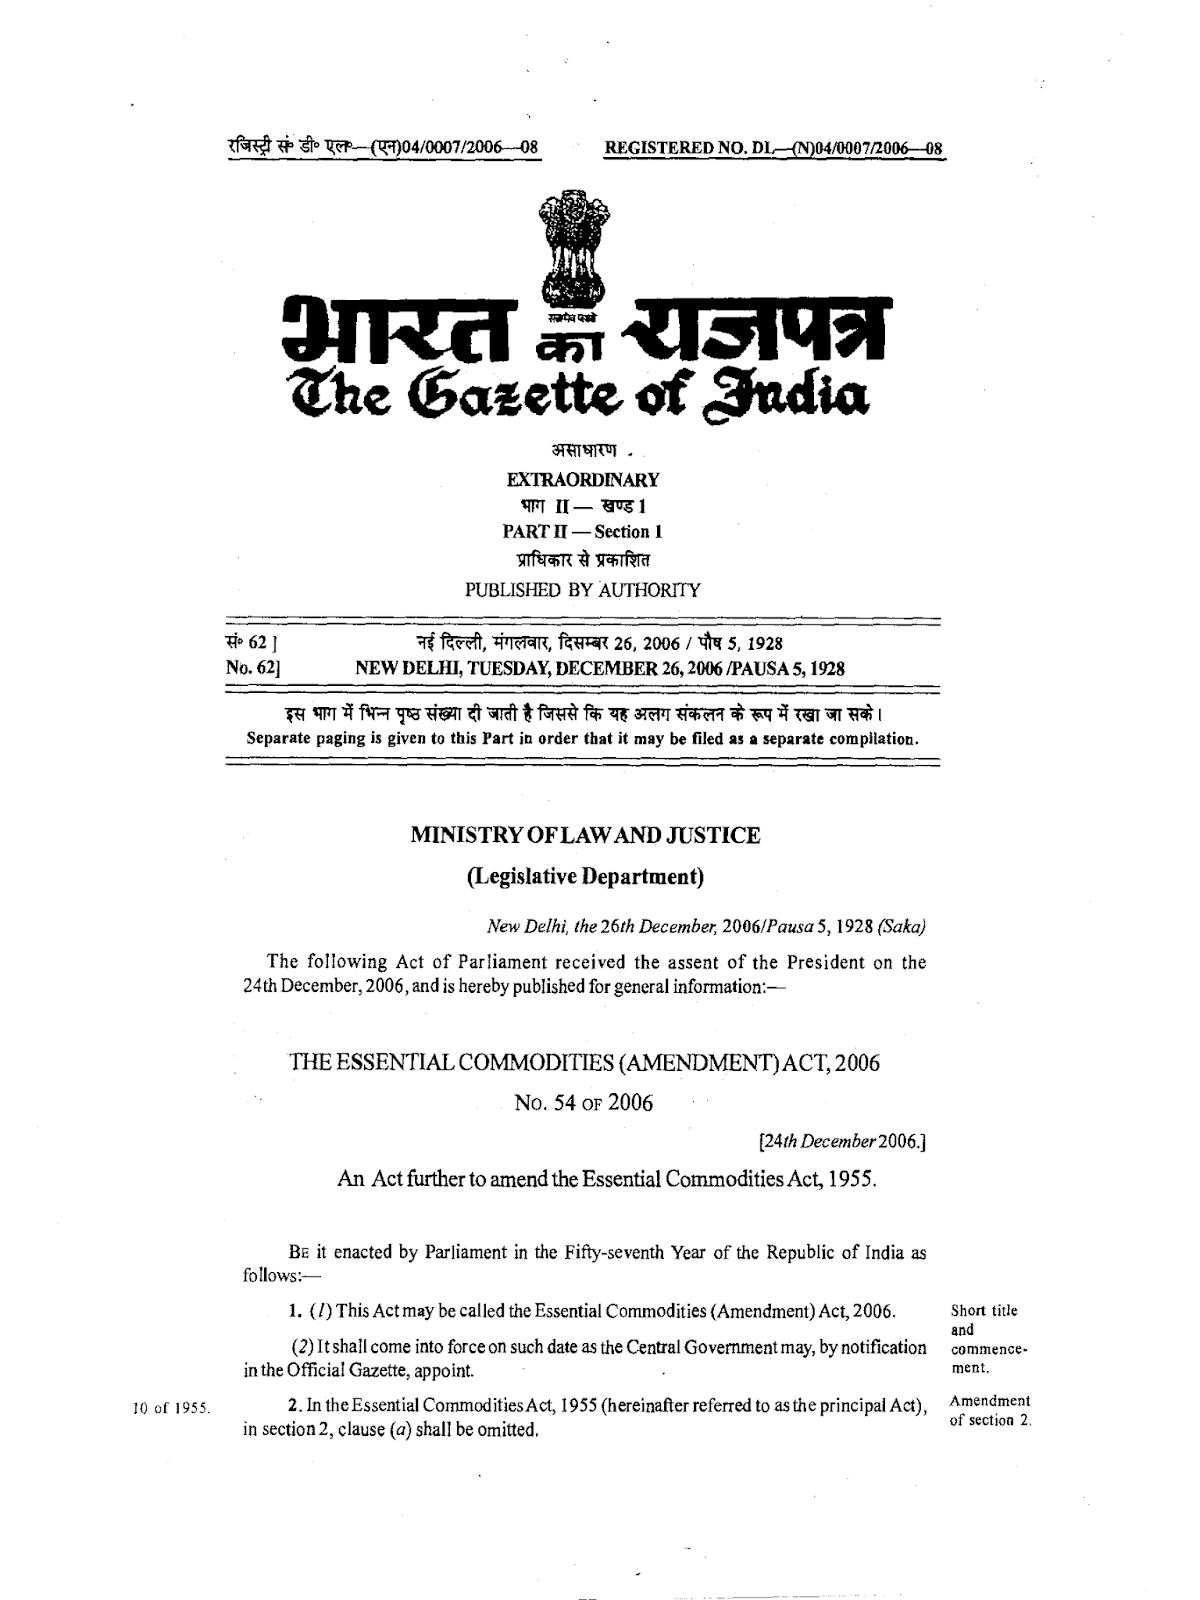 Essential Commodities (Amendment) Act 2006